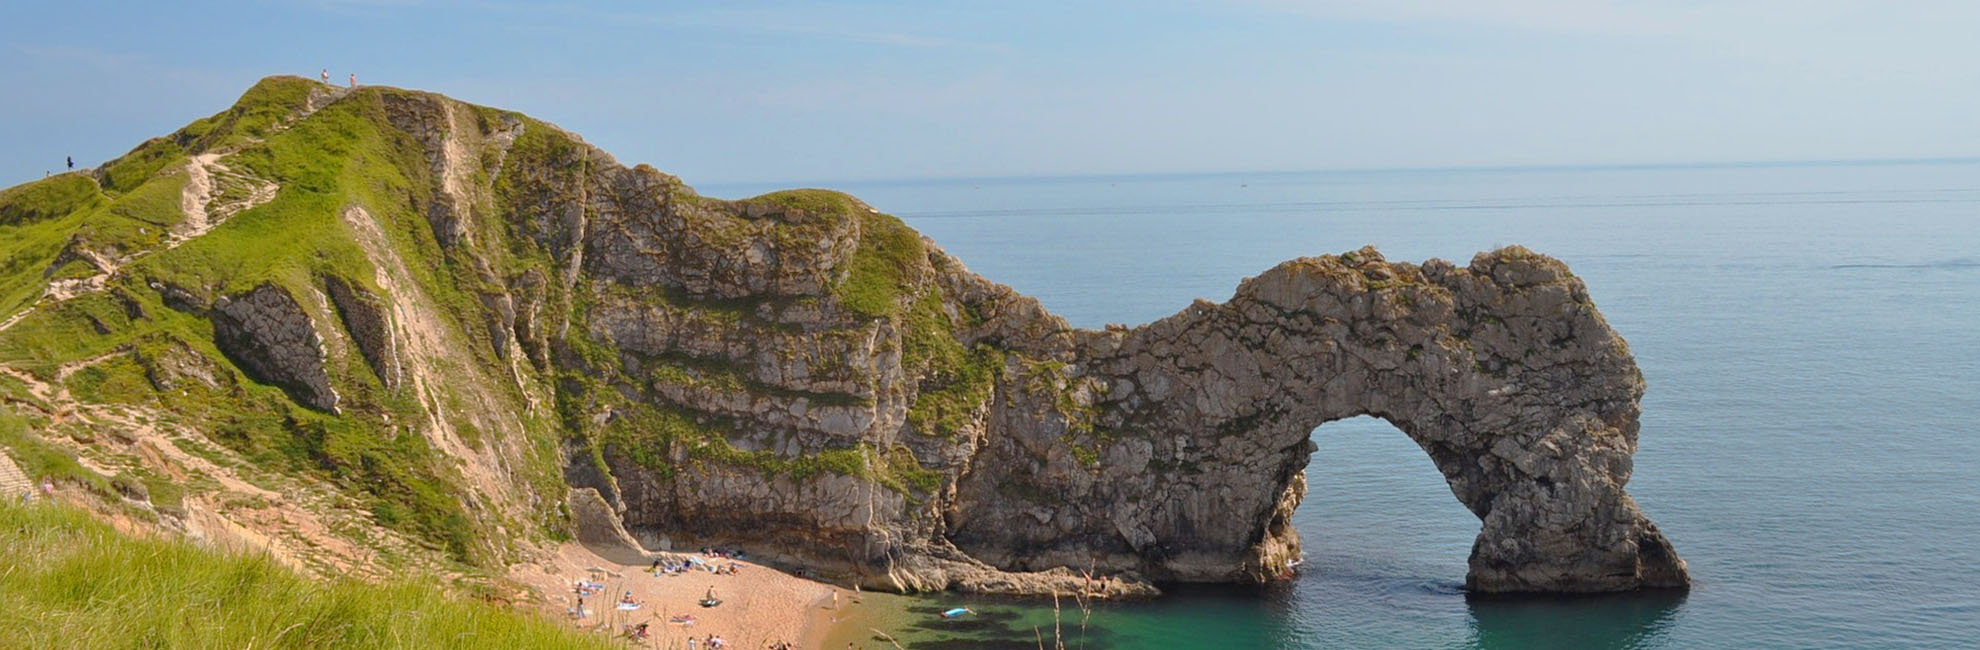 The view overlooking spectacular Durdle Door and beach